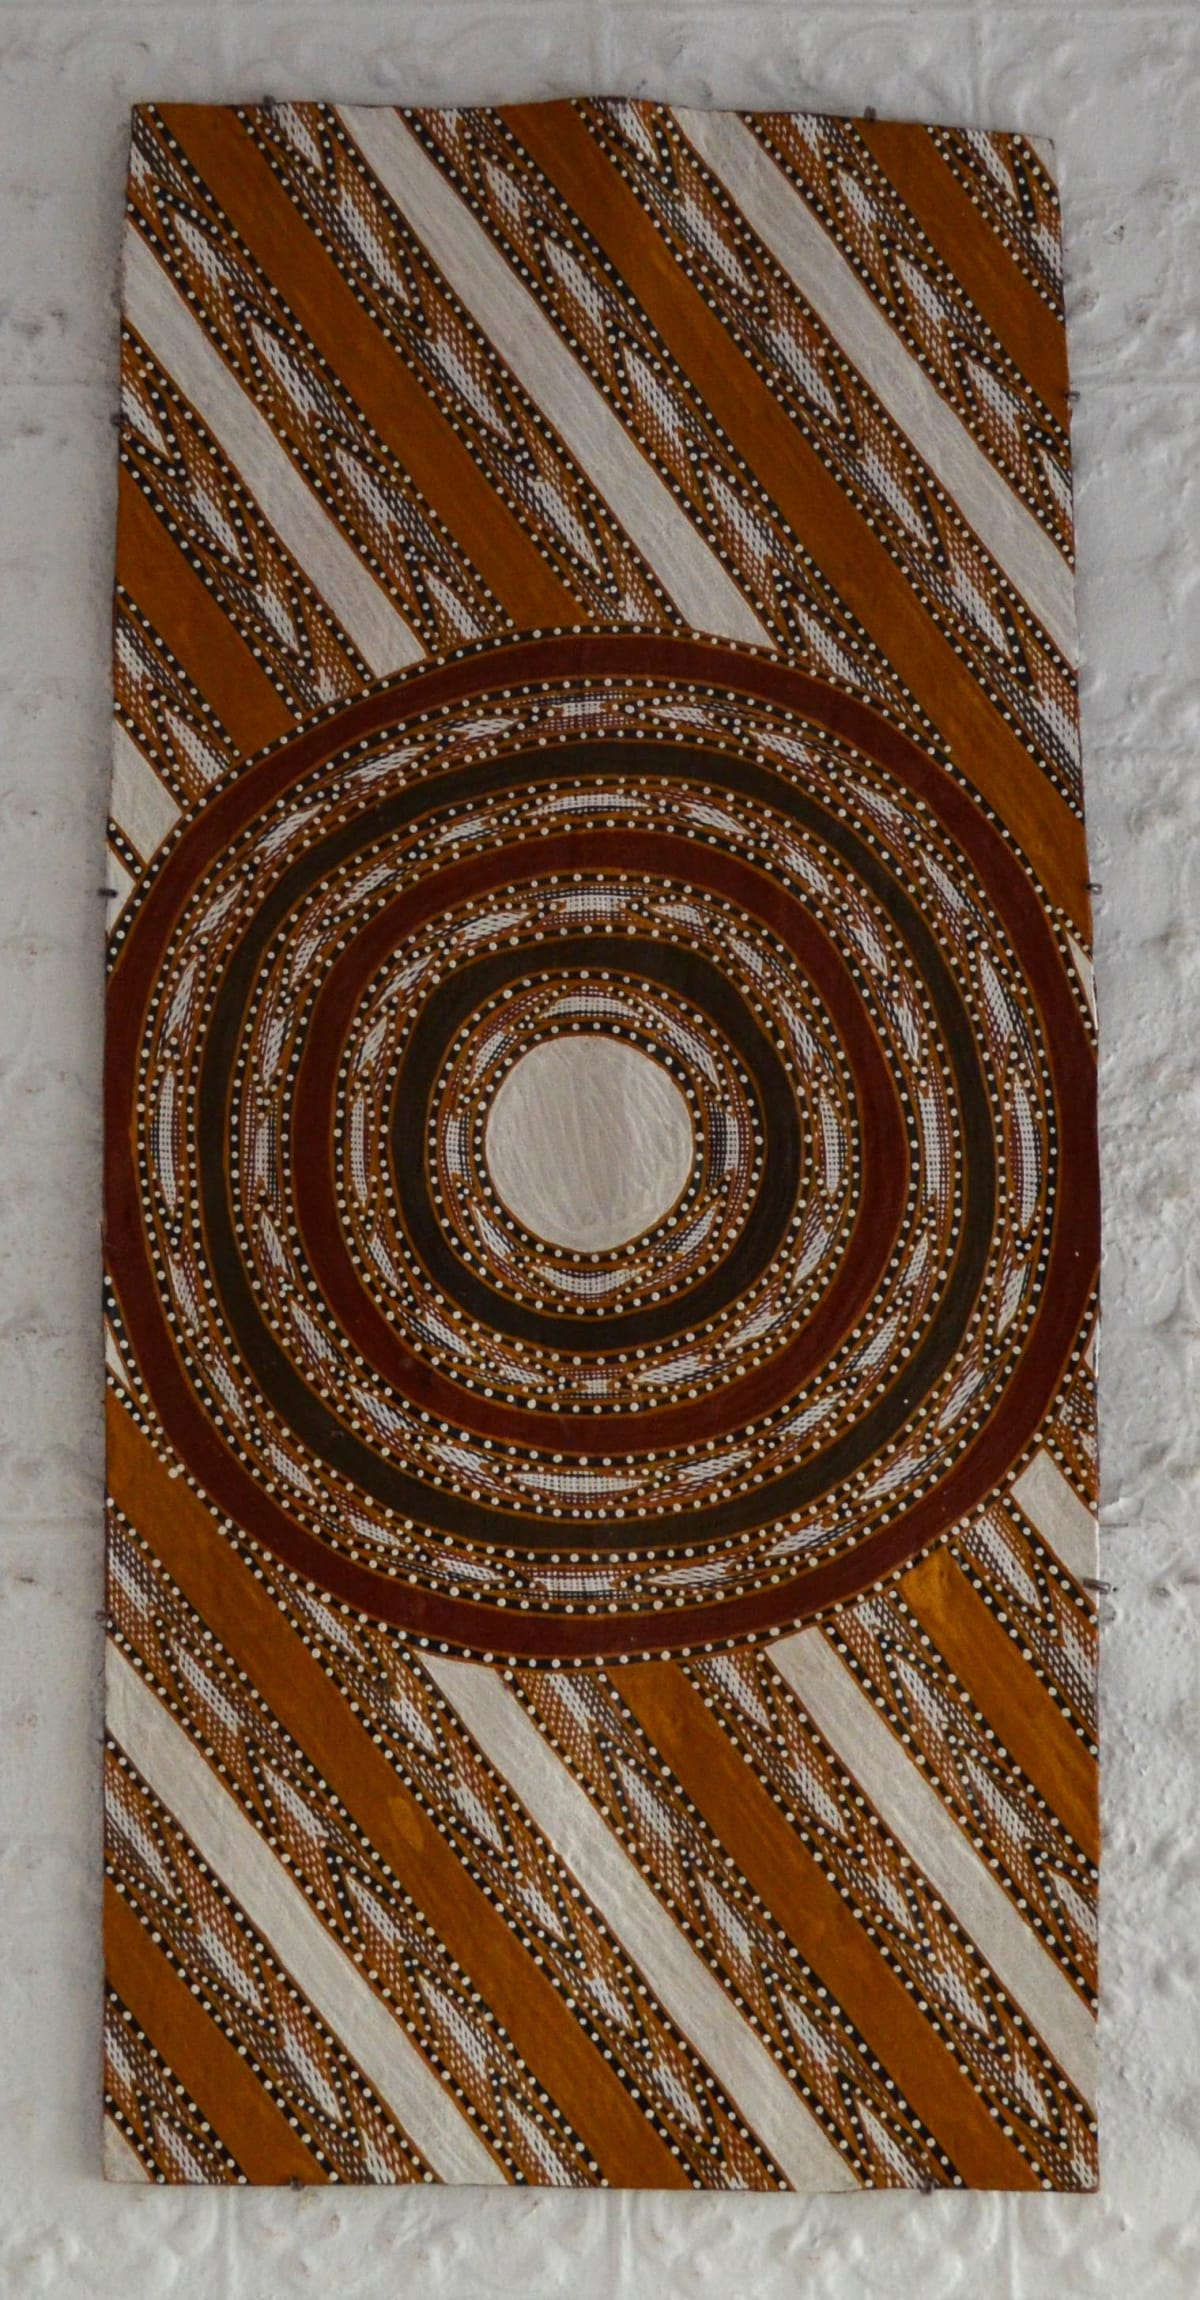 Ralwurrandji Wanambi Bamurrungu incised bark with sand and earth pigments 110 x 52 cm